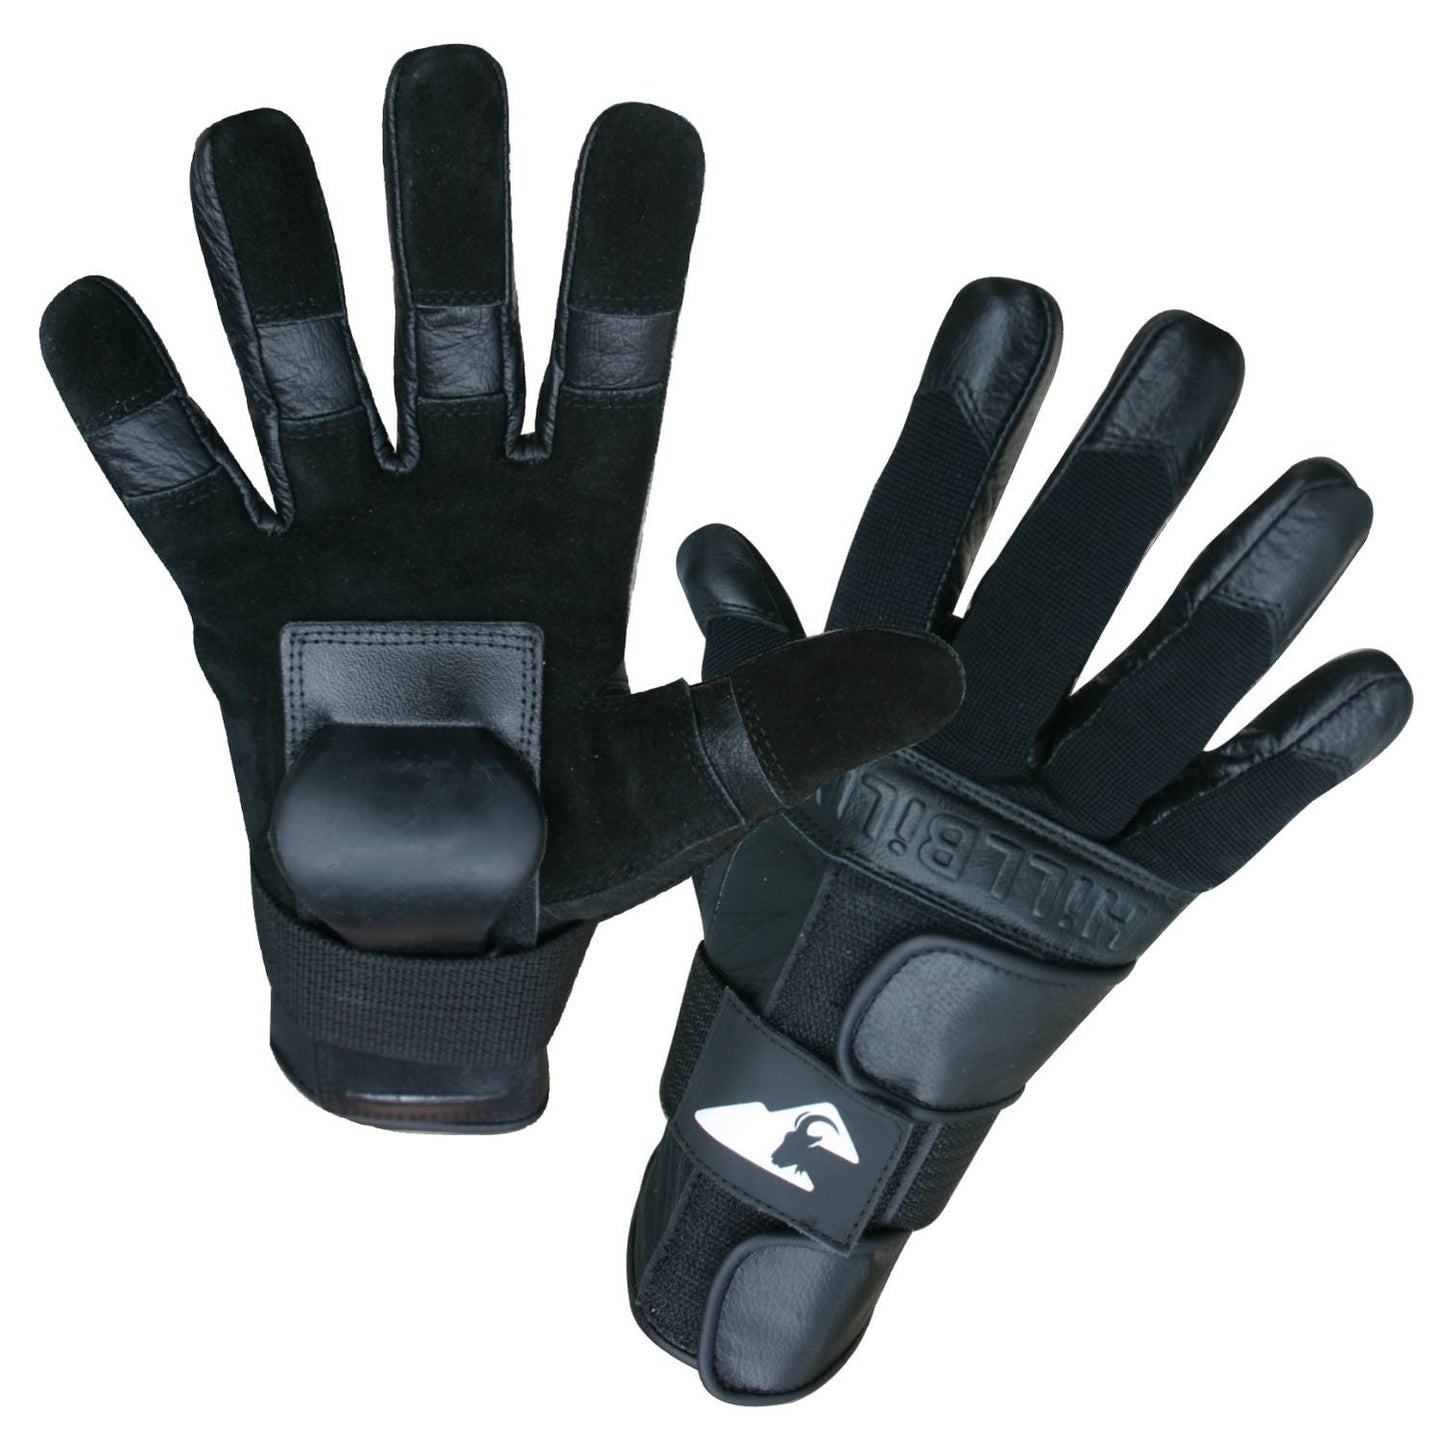 Hillbilly Wrist Guard Gloves Full Finger